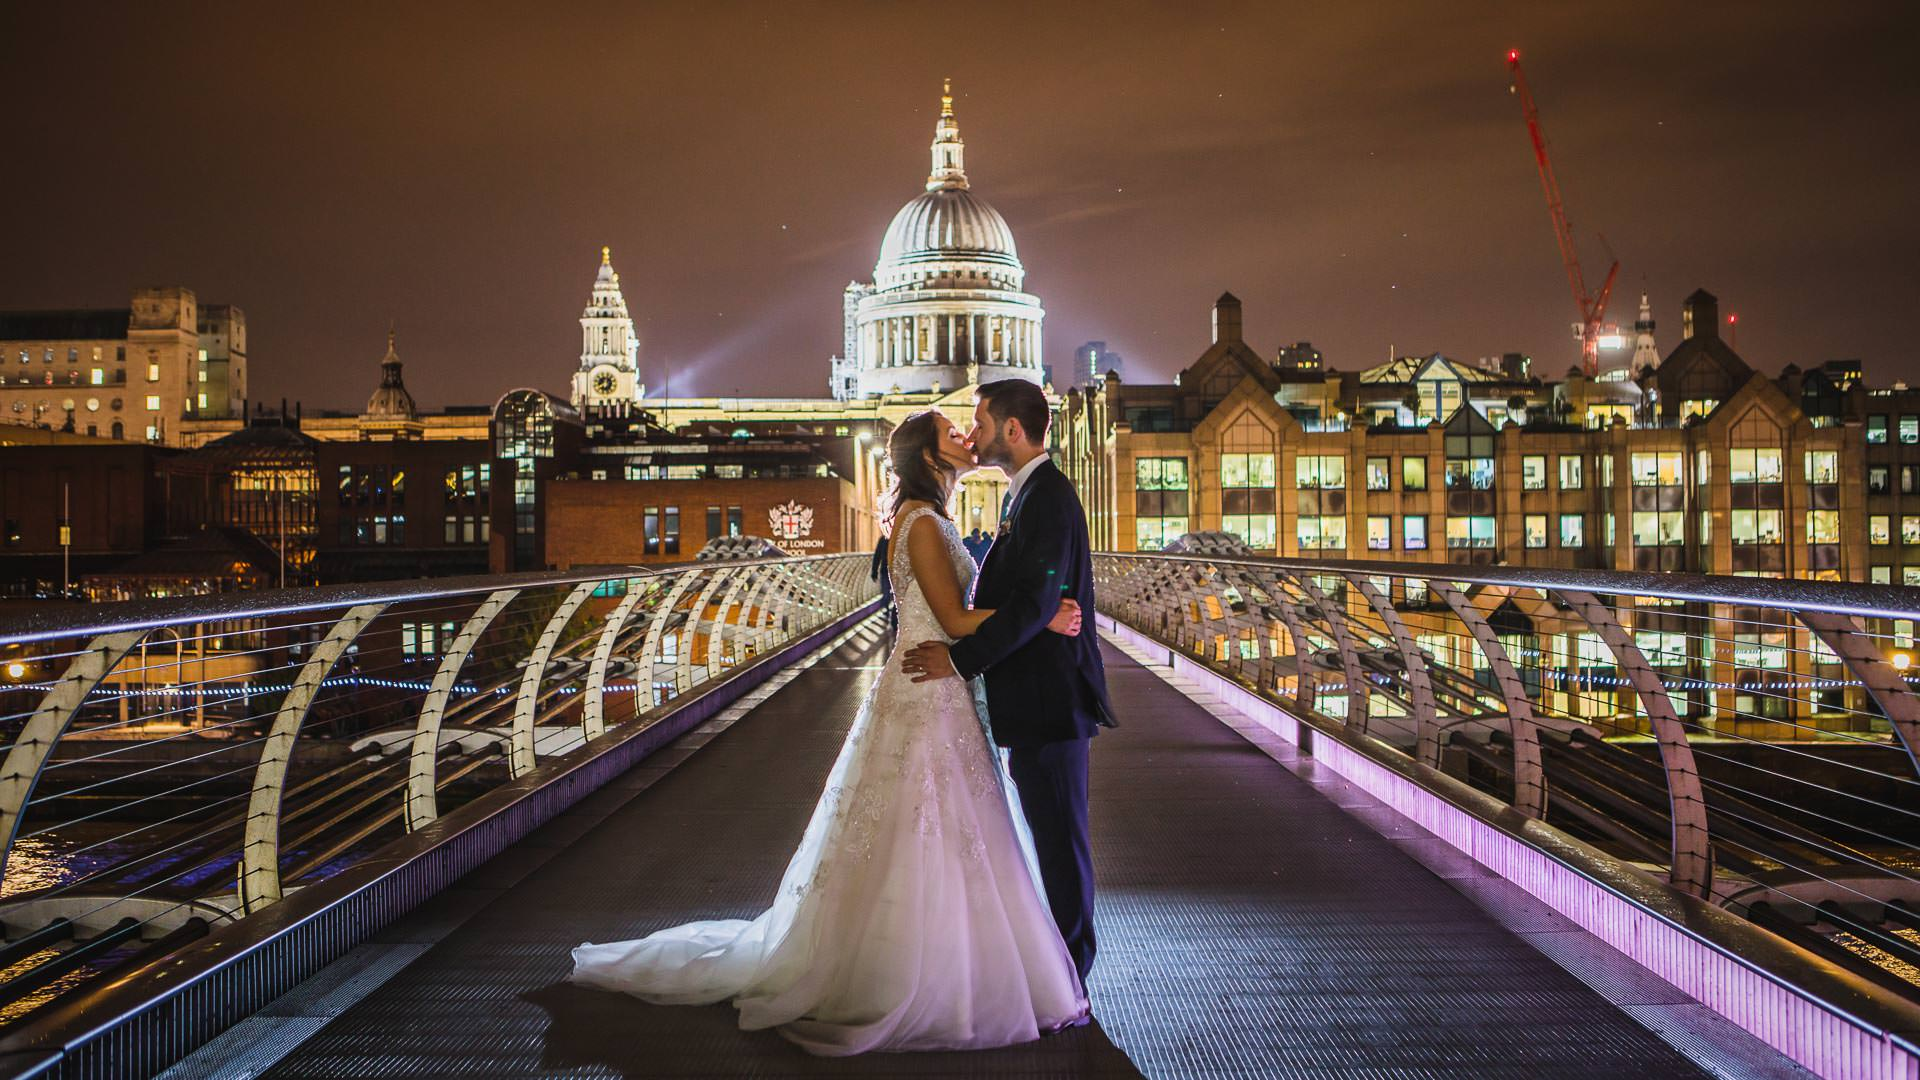 Stunning London location based wedding photography by Tierney Photography.